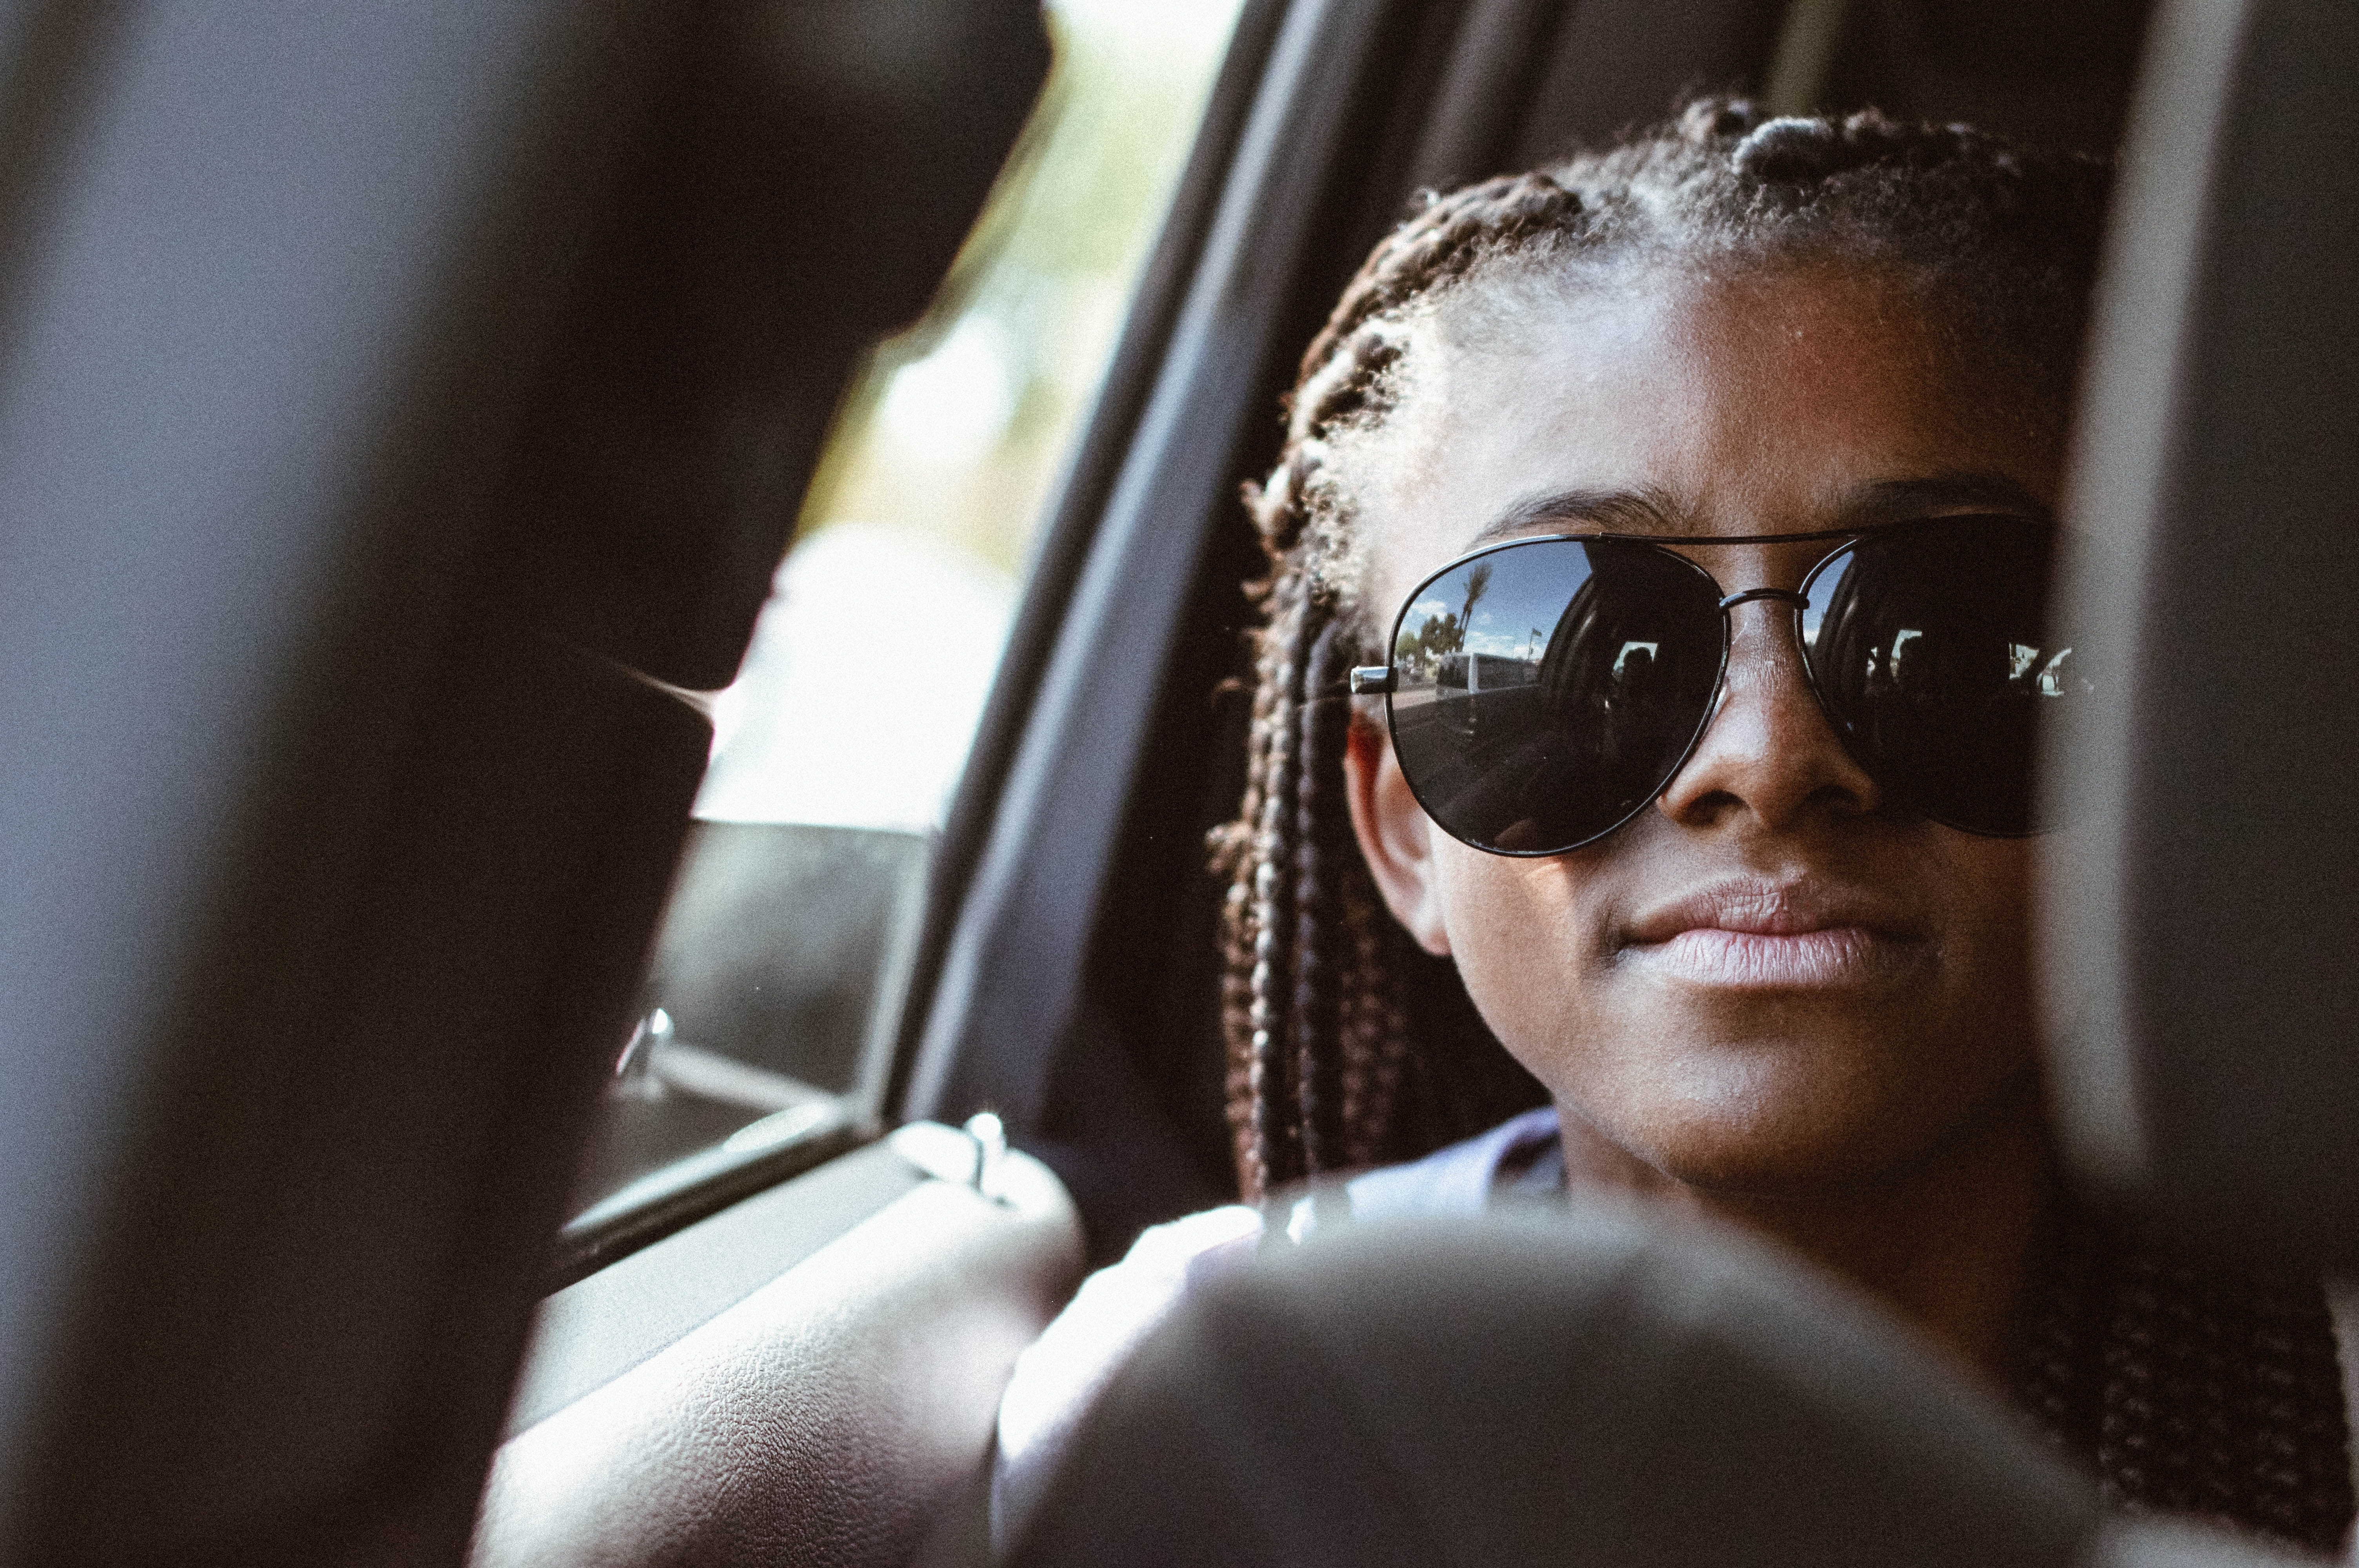 A woman in braids and sunglasses riding in a car, pictured through the seats